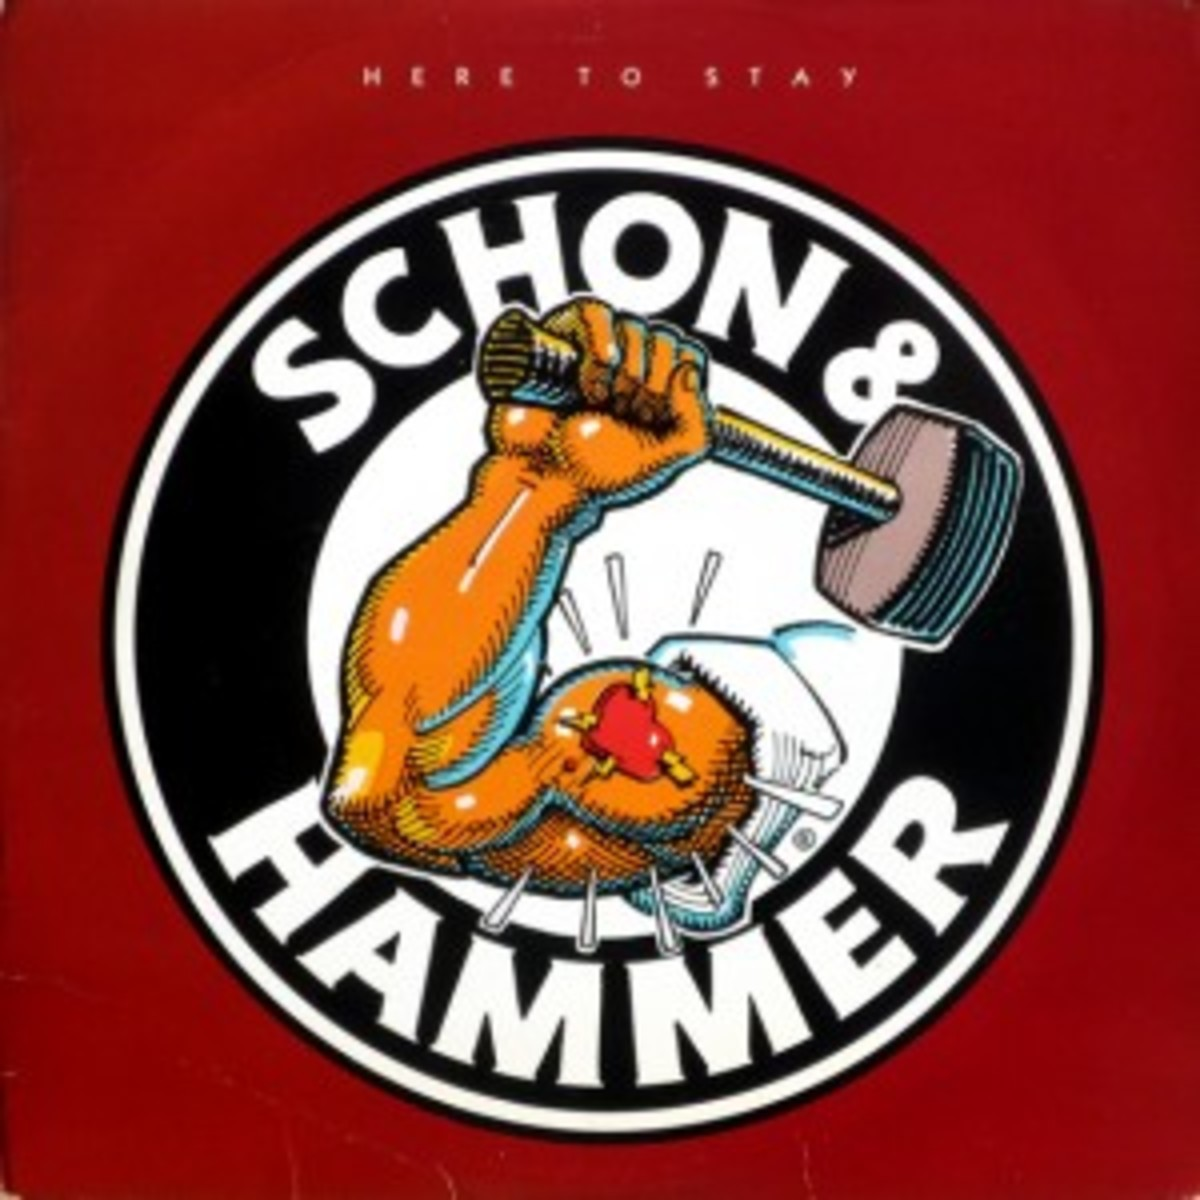 Schon & Hammer Here to Stay